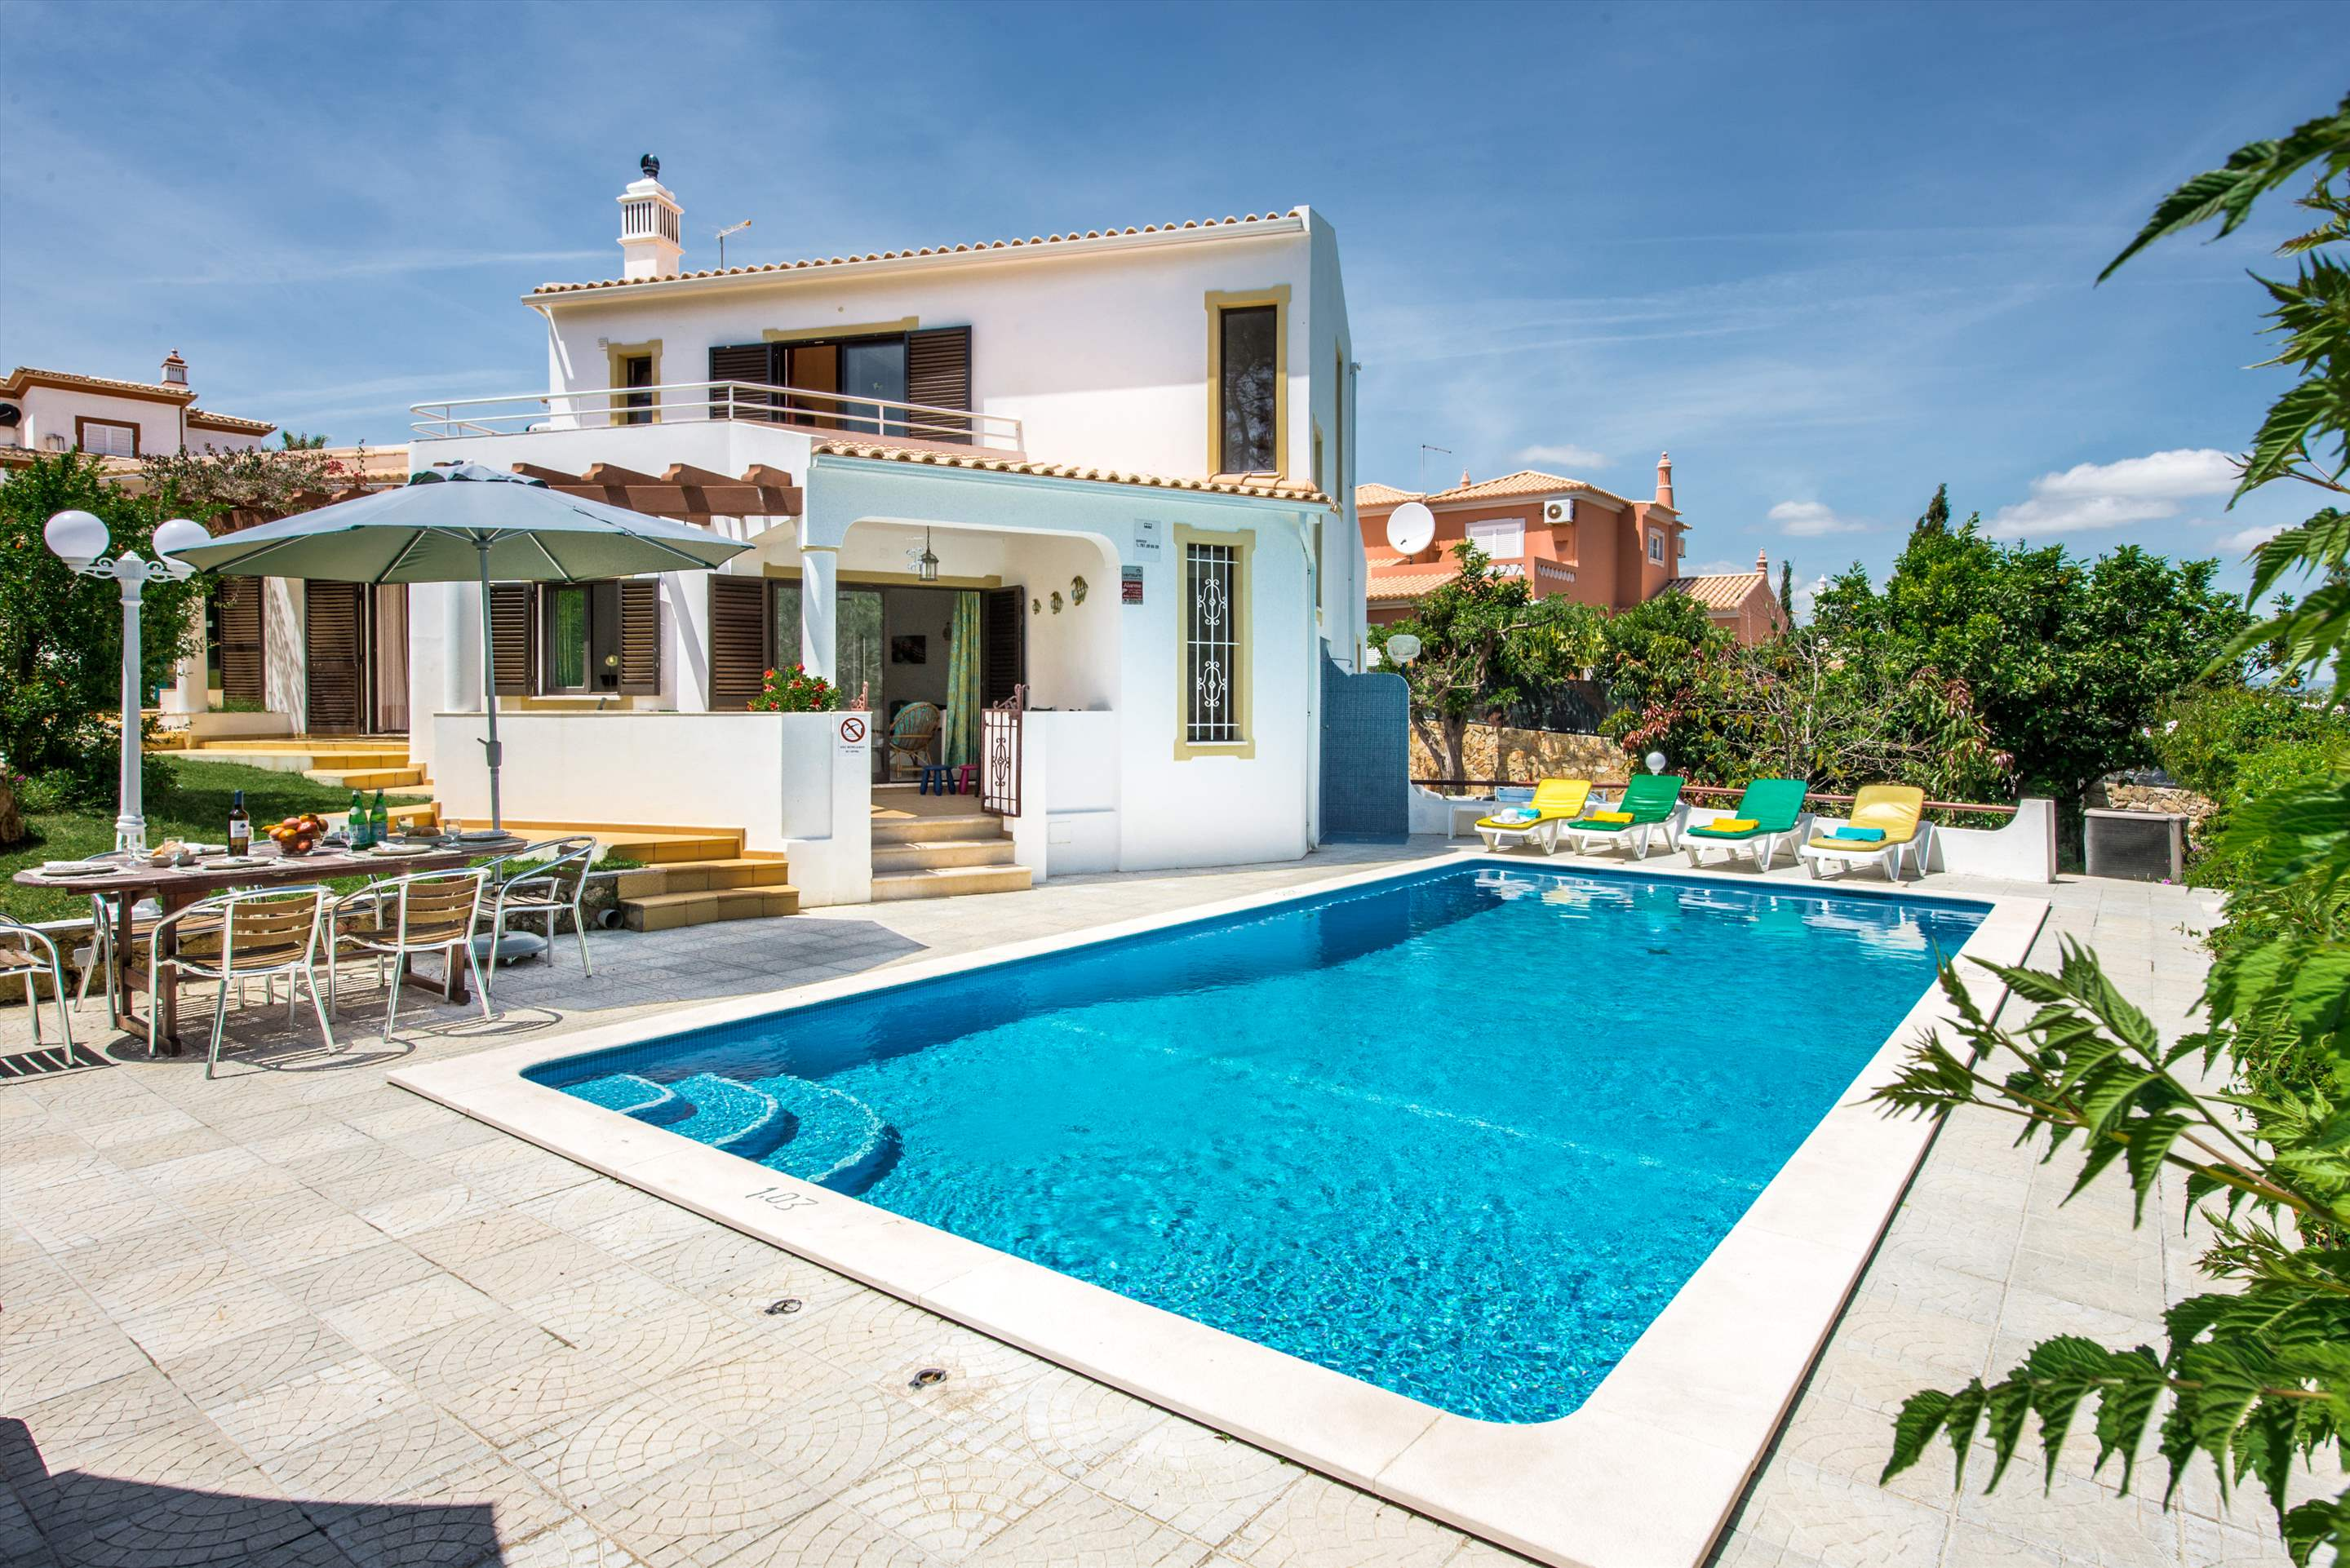 Villa Barros, 7-8 persons rate, 4 bedroom villa in Gale, Vale da Parra and Guia, Algarve Photo #1